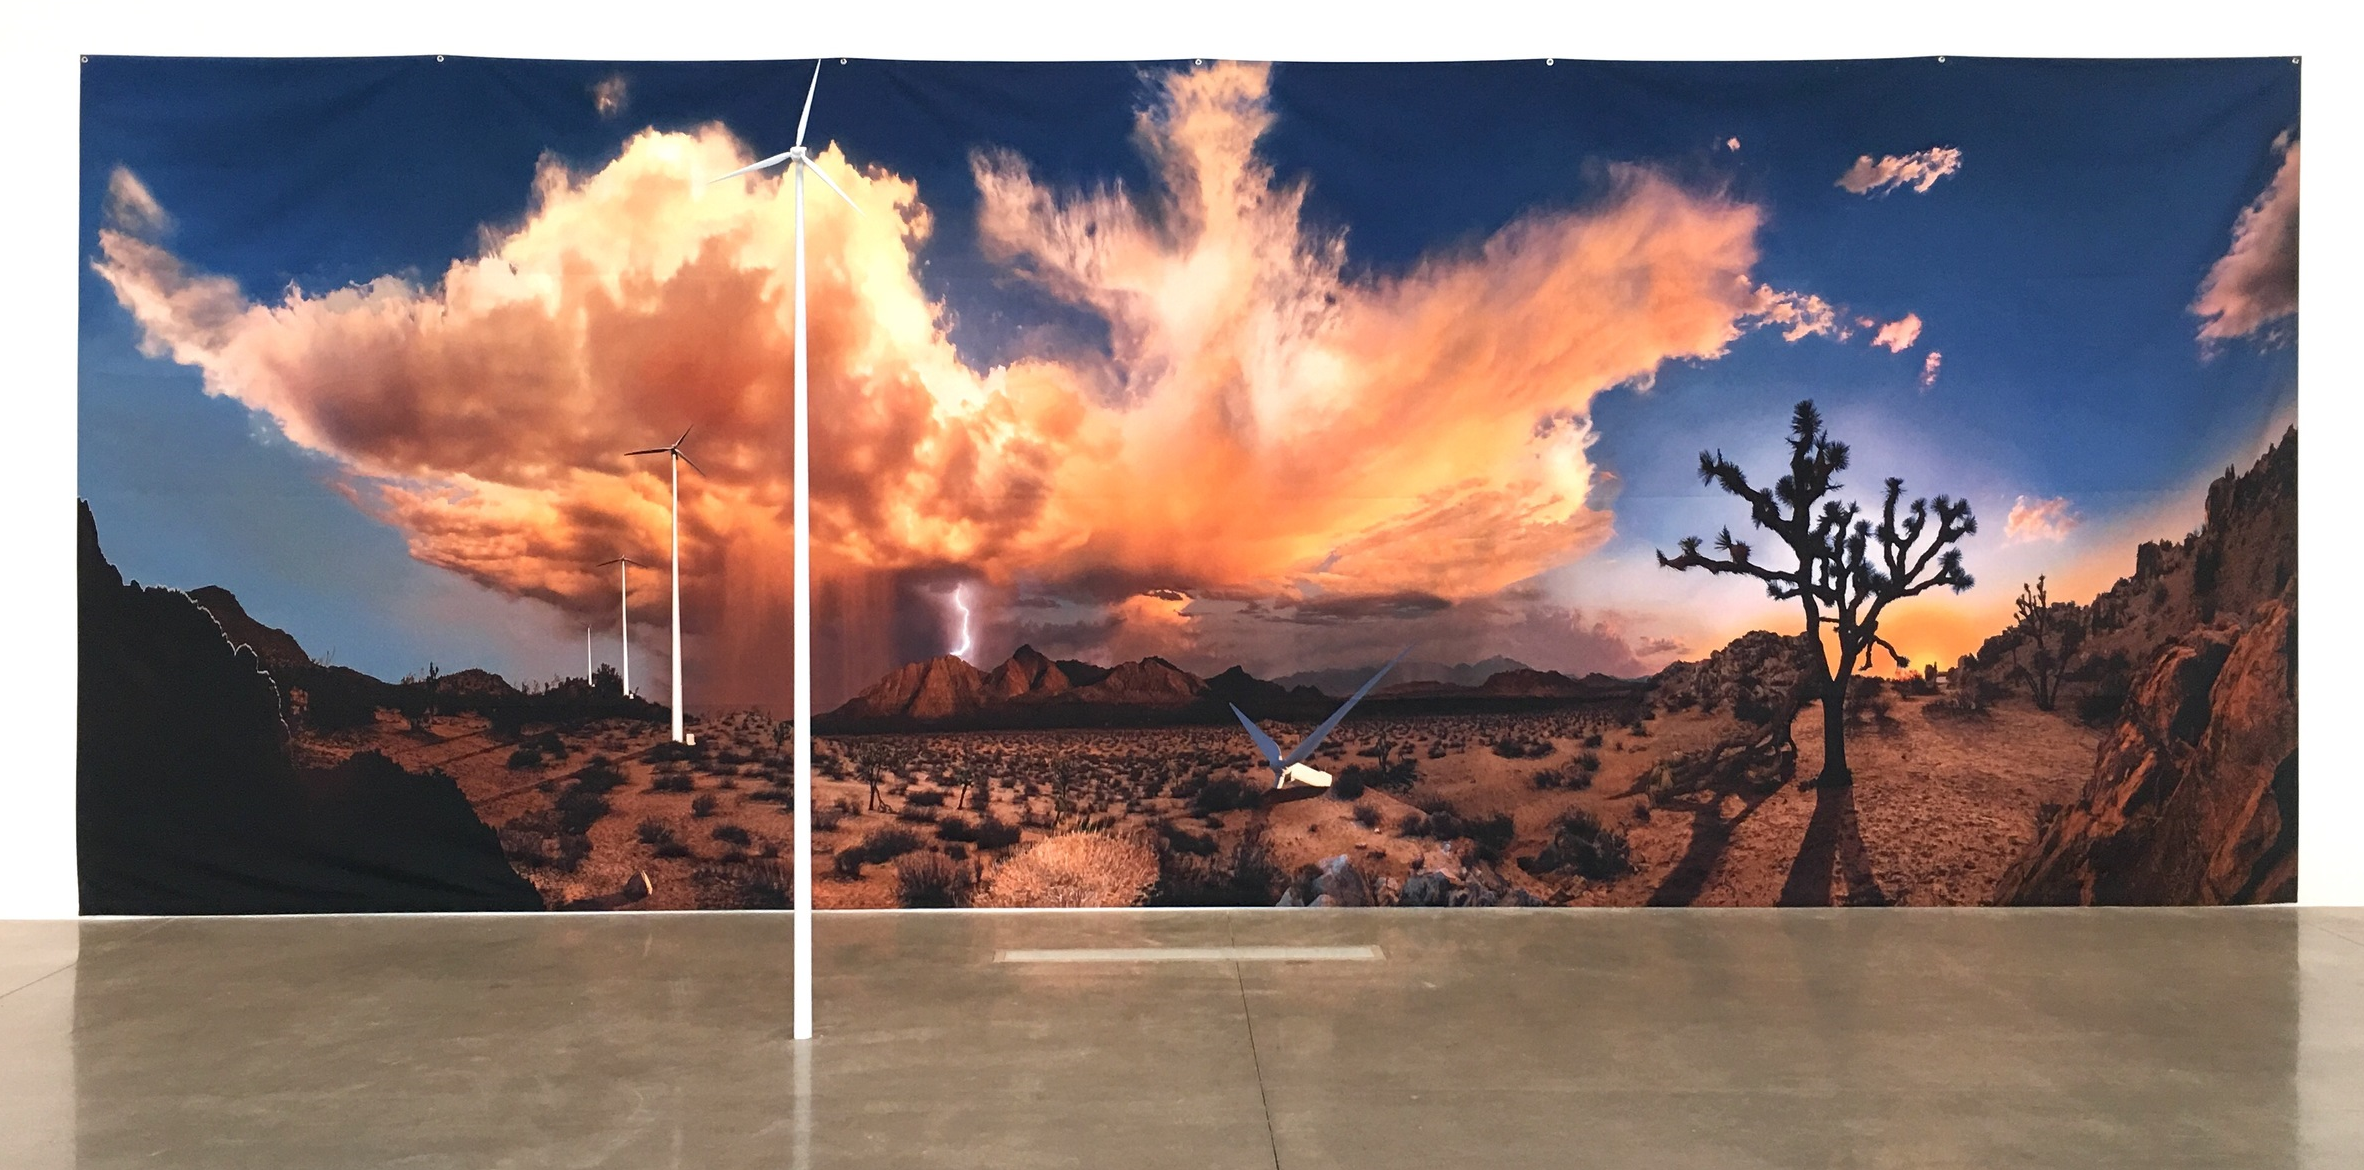 SADDLEBACK BUTTE INSTALLATION 1 (2016)       INK JET PRINT/ WOOD/ PLASTIC 10 FEET X 26 FEET